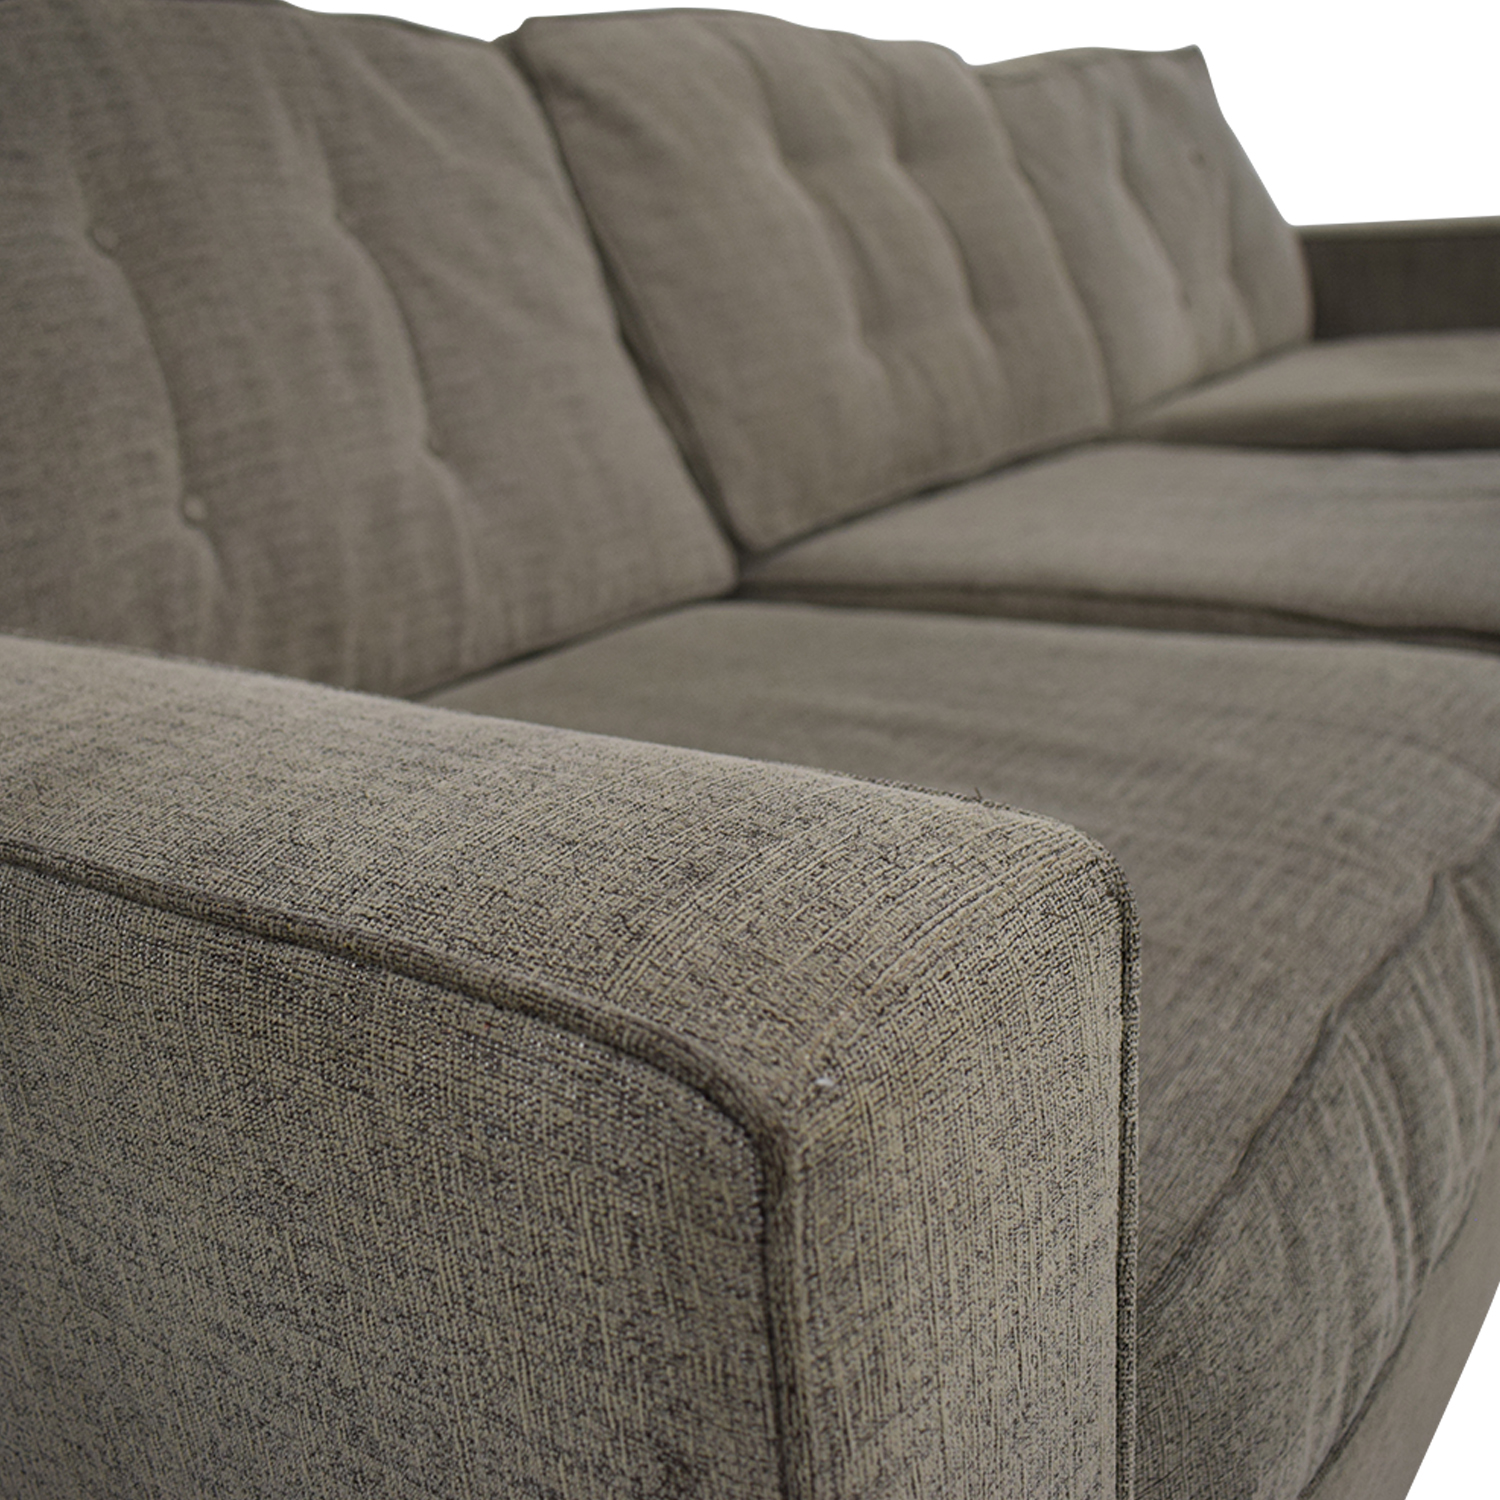 buy Macy's Grey Tufted Chaise Sectional Macy's Sofas